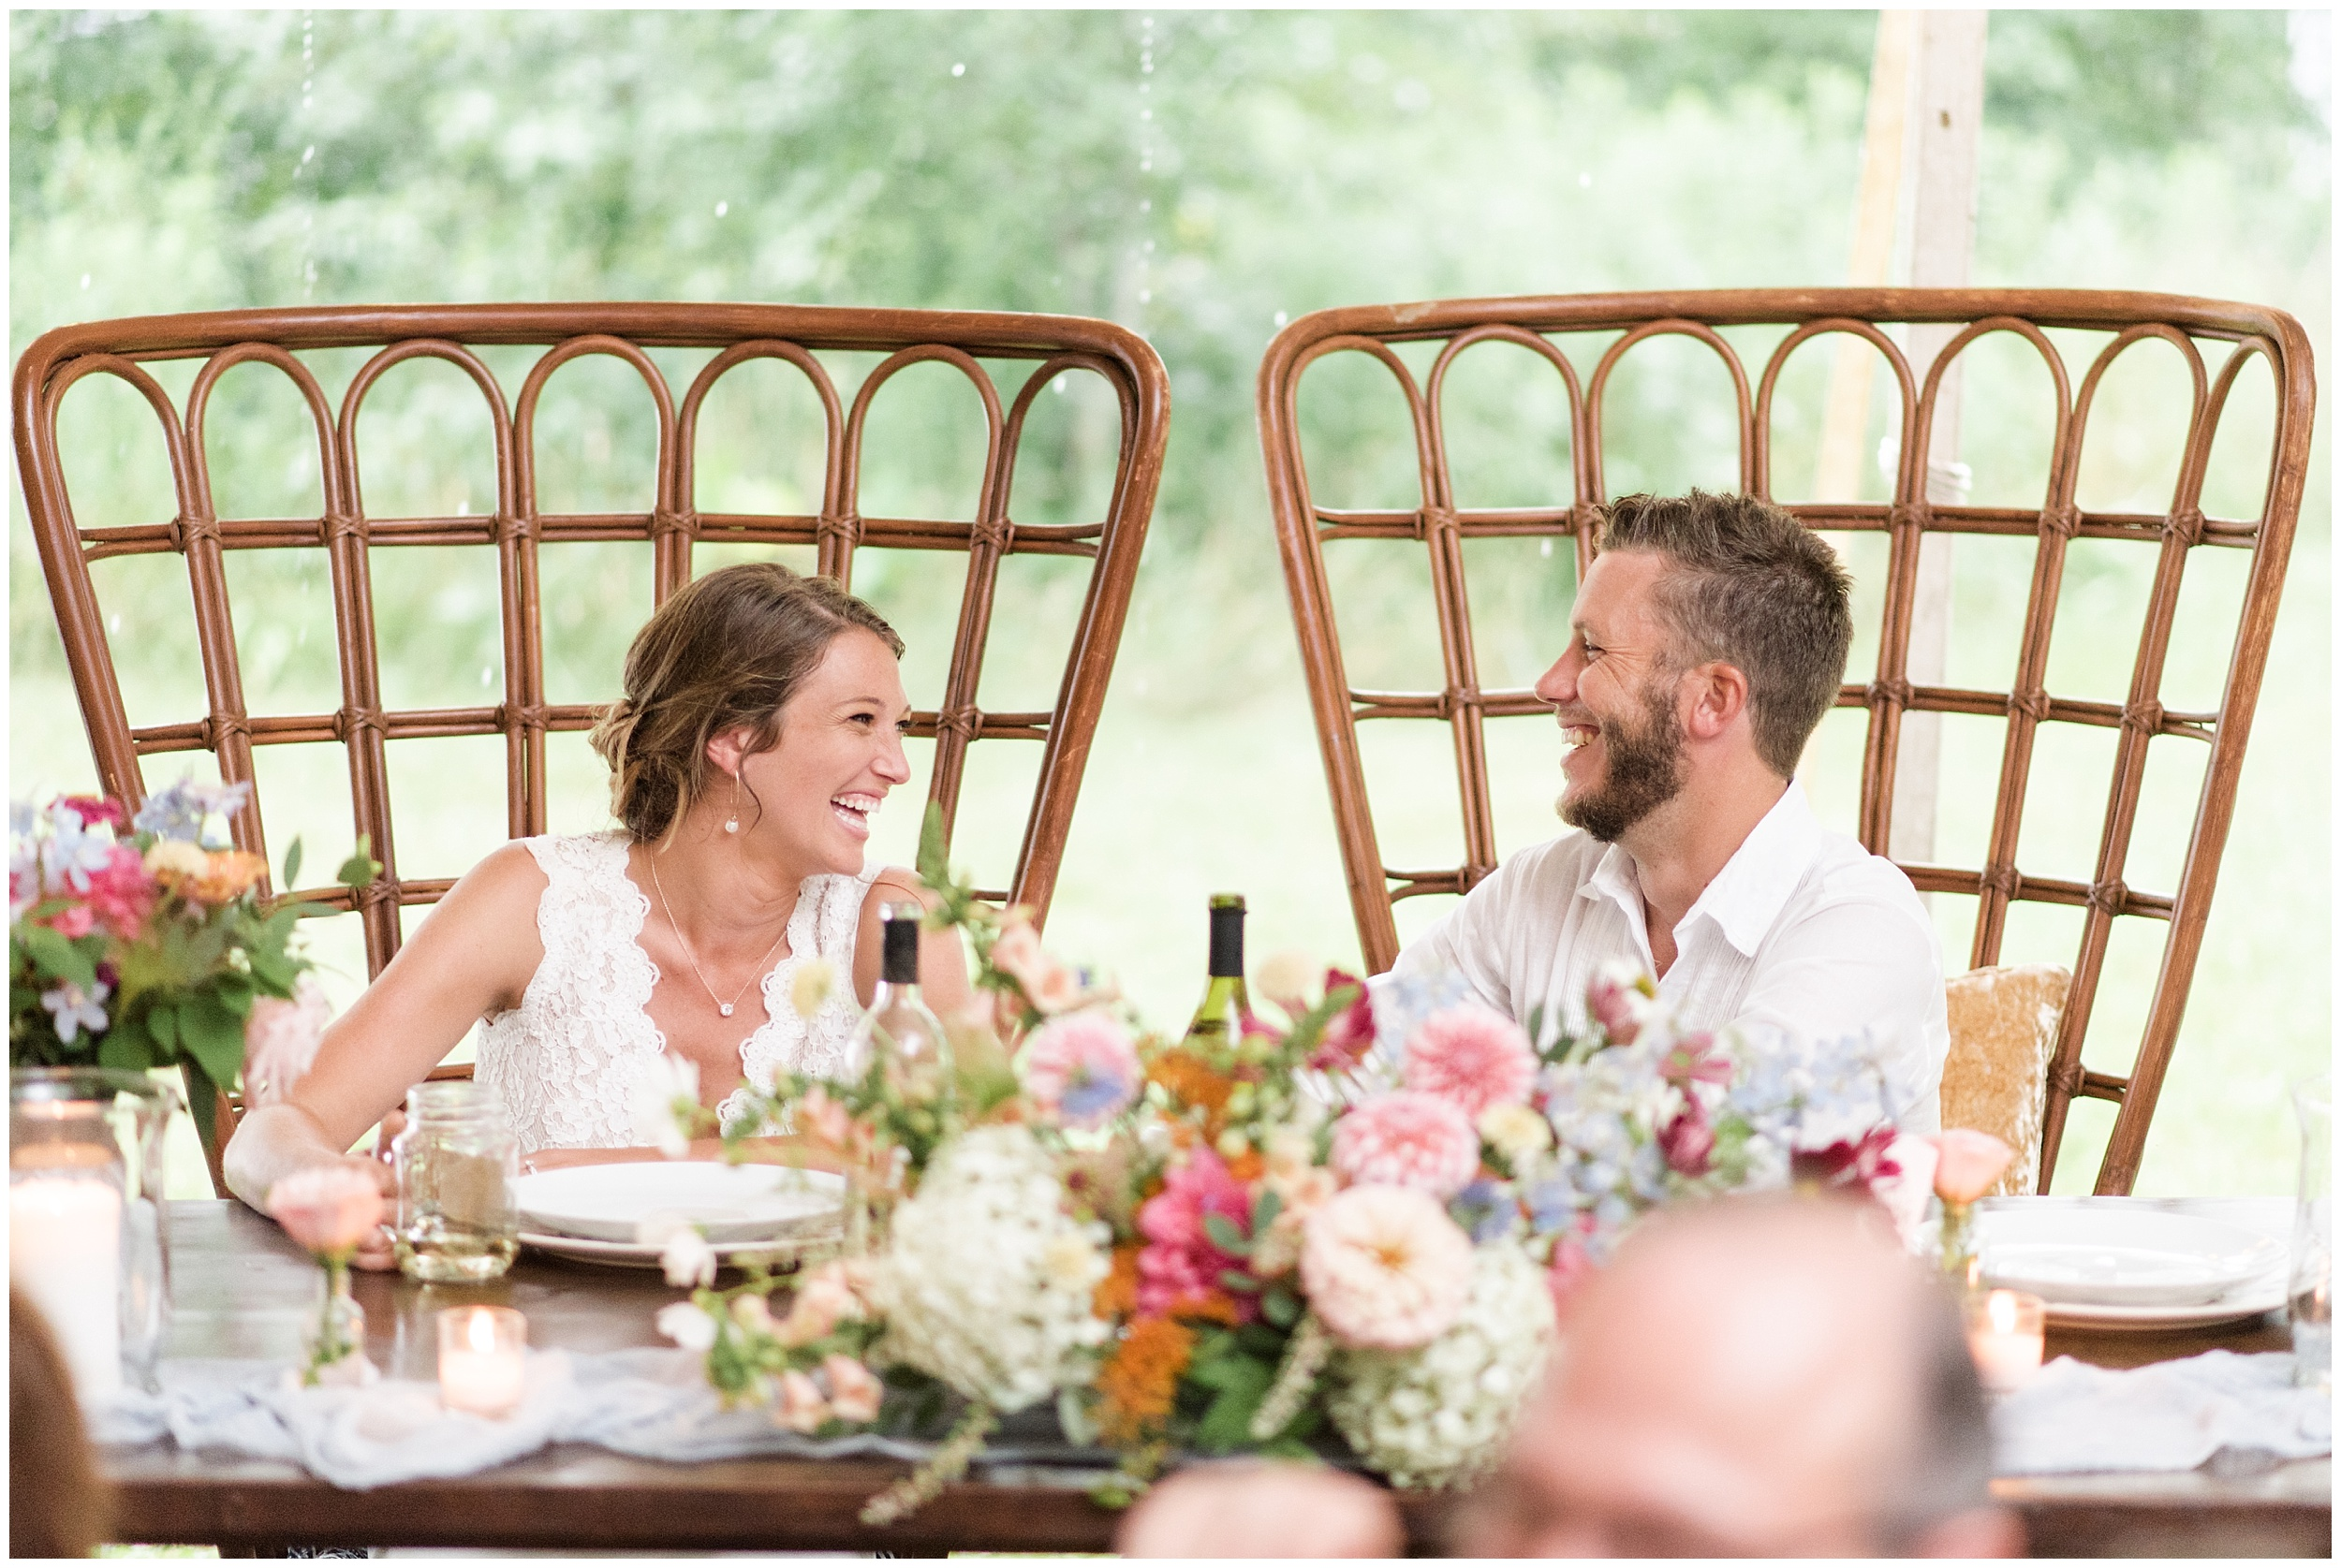 Whimsical-Ethereal-July-Kalamazoo-Wedding-Bright-Airy-Documentary-Milwaukee-Photographer_0086.jpg